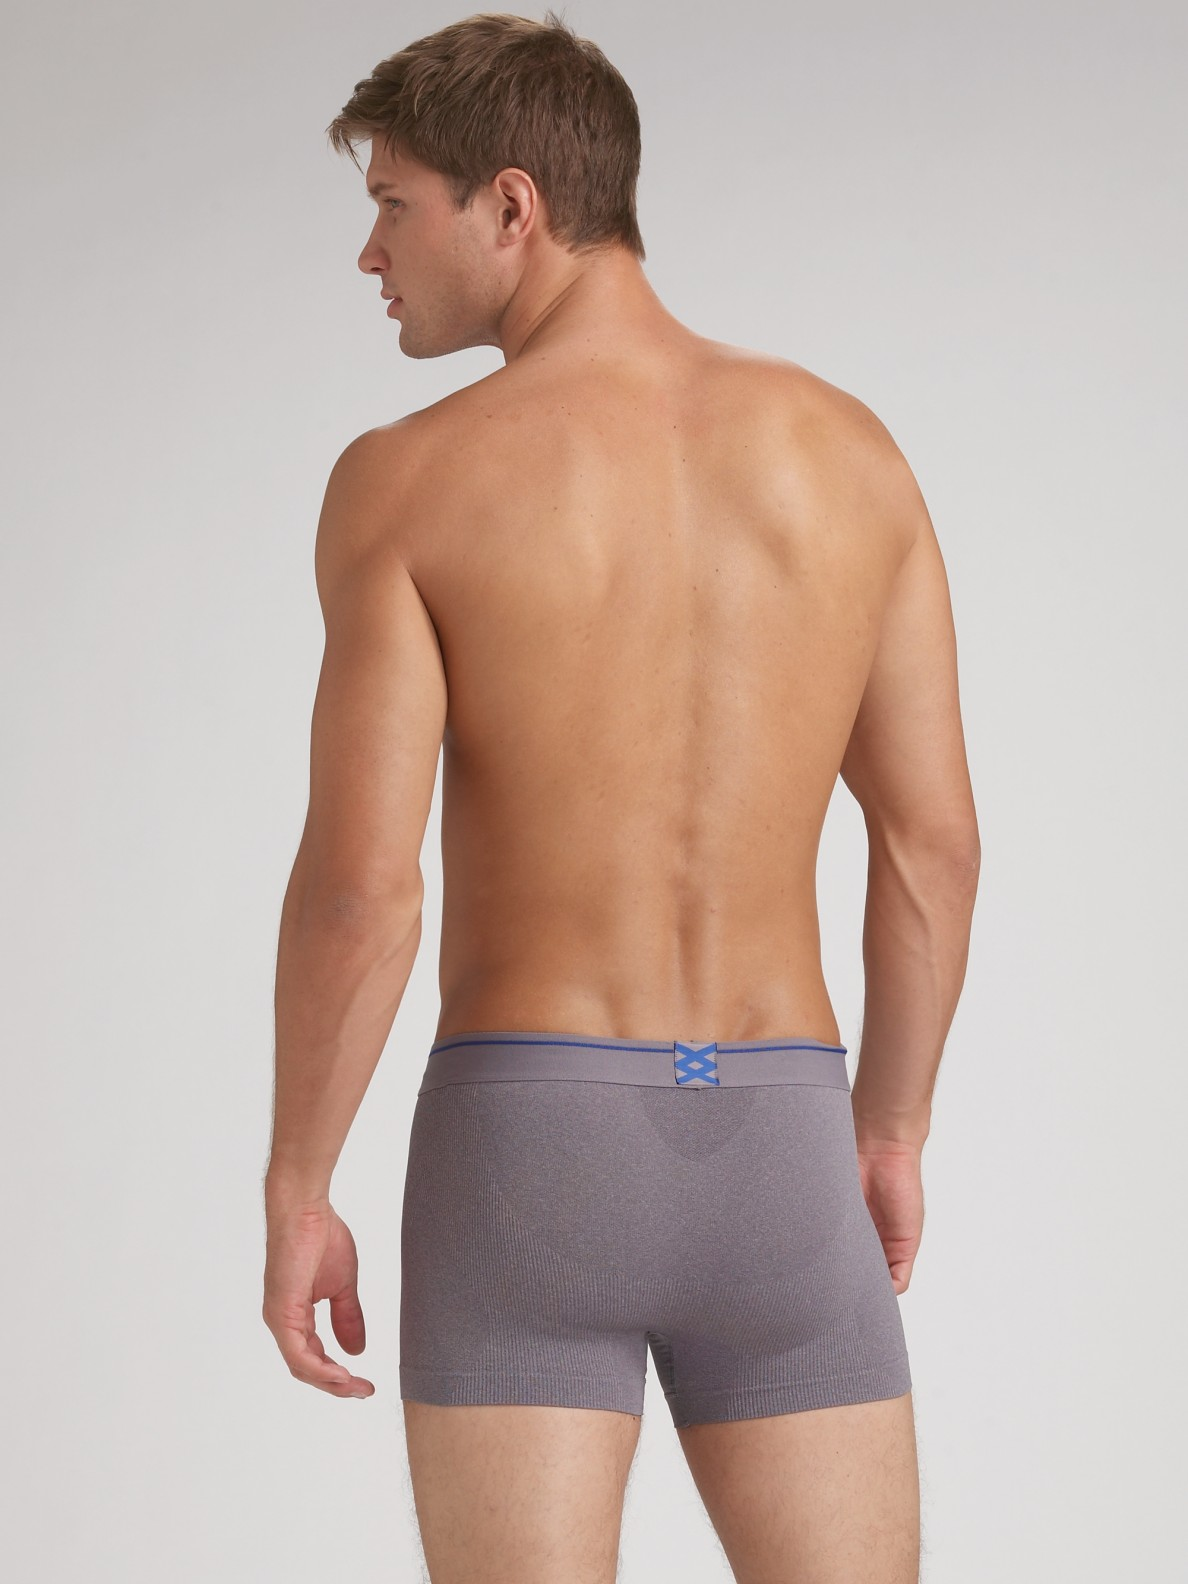 Lyst Equmen Precision Boxer Briefs Gray Men